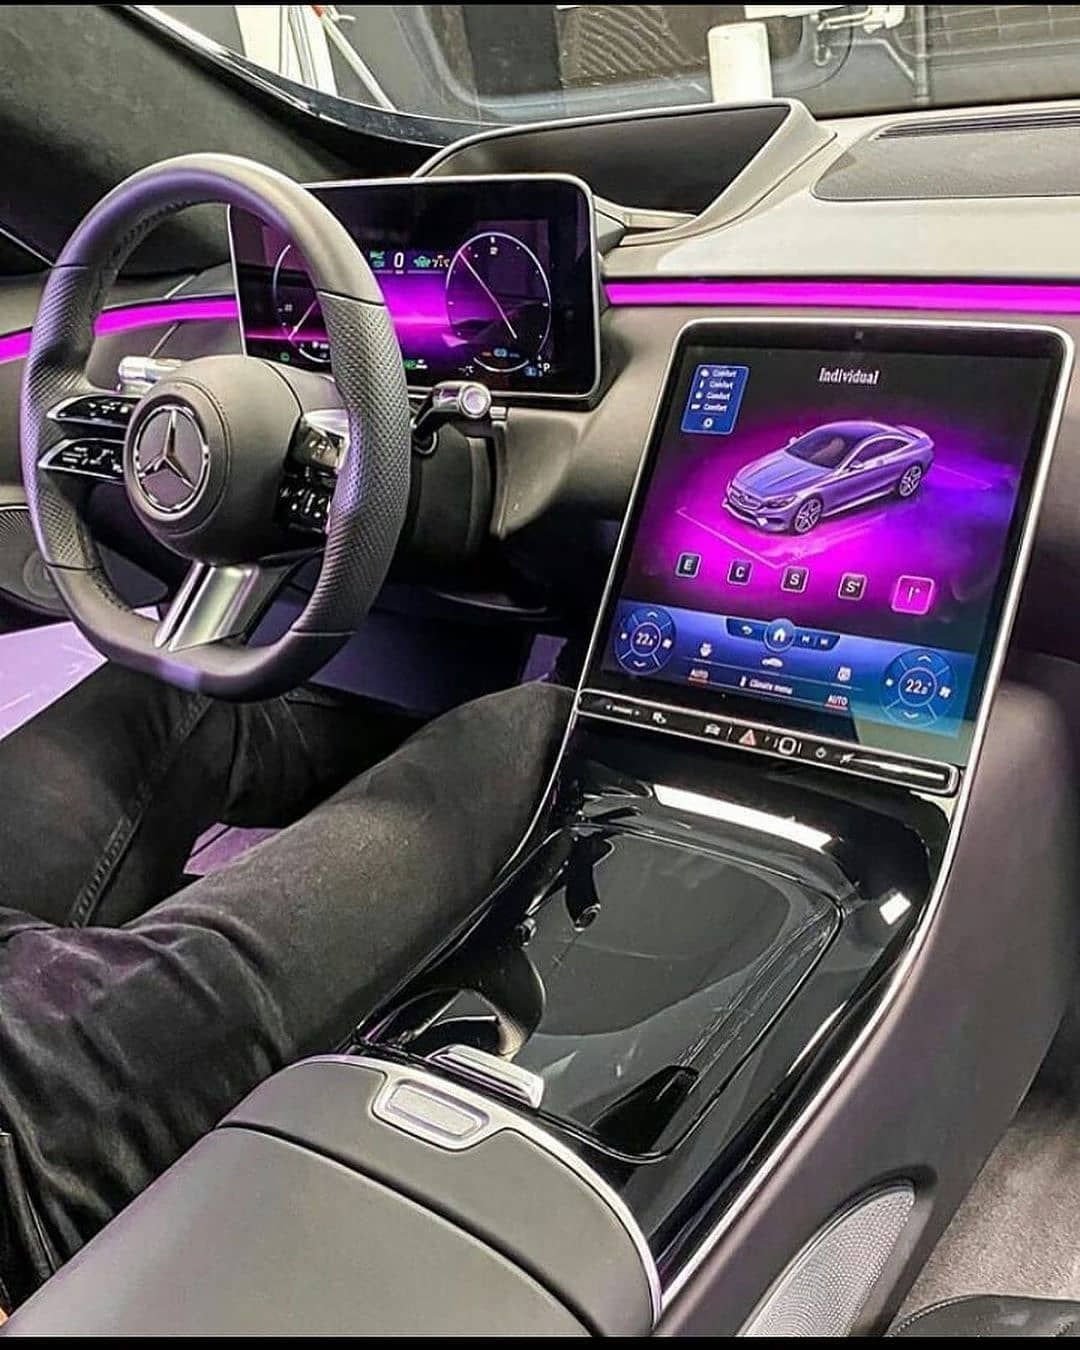 Mercedes On Instagram 2021 Mercedes S Class Interior Follow Mercedestrend19 For Mor Mercedes S Class Interior Mercedes Benz Interior Mercedes S Class